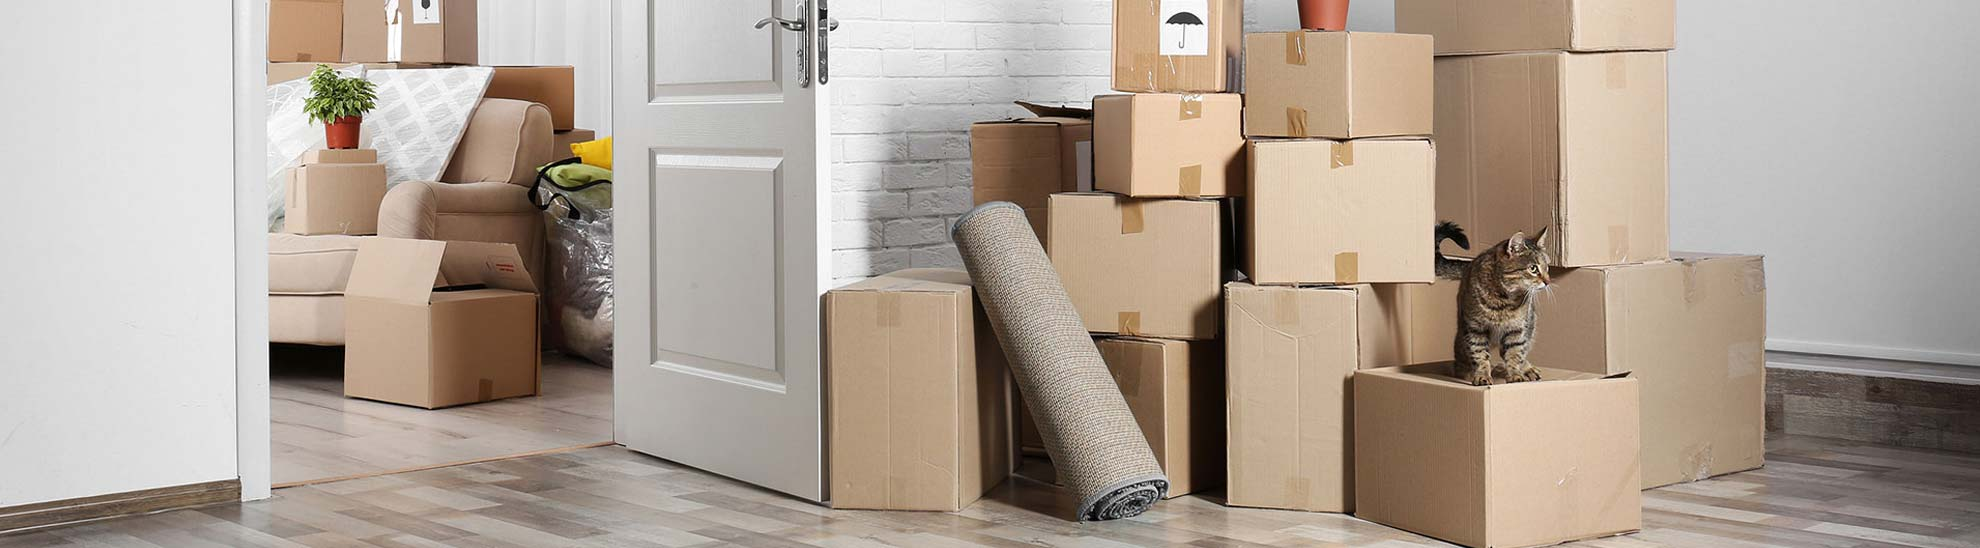 relocation and removal services